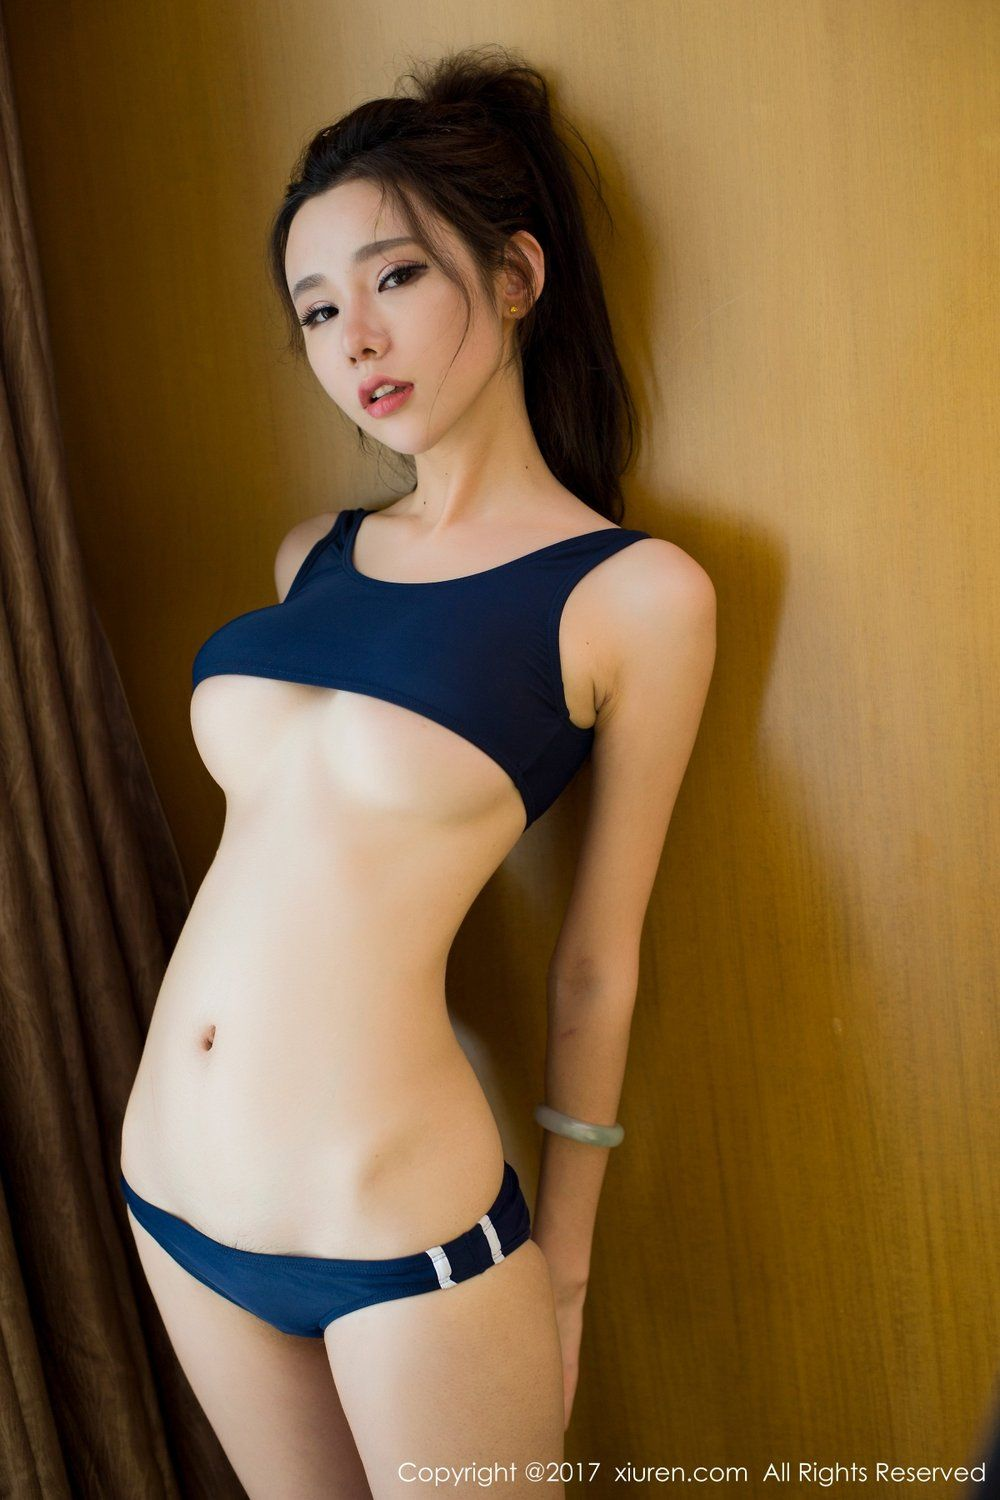 Erotic asian women photos